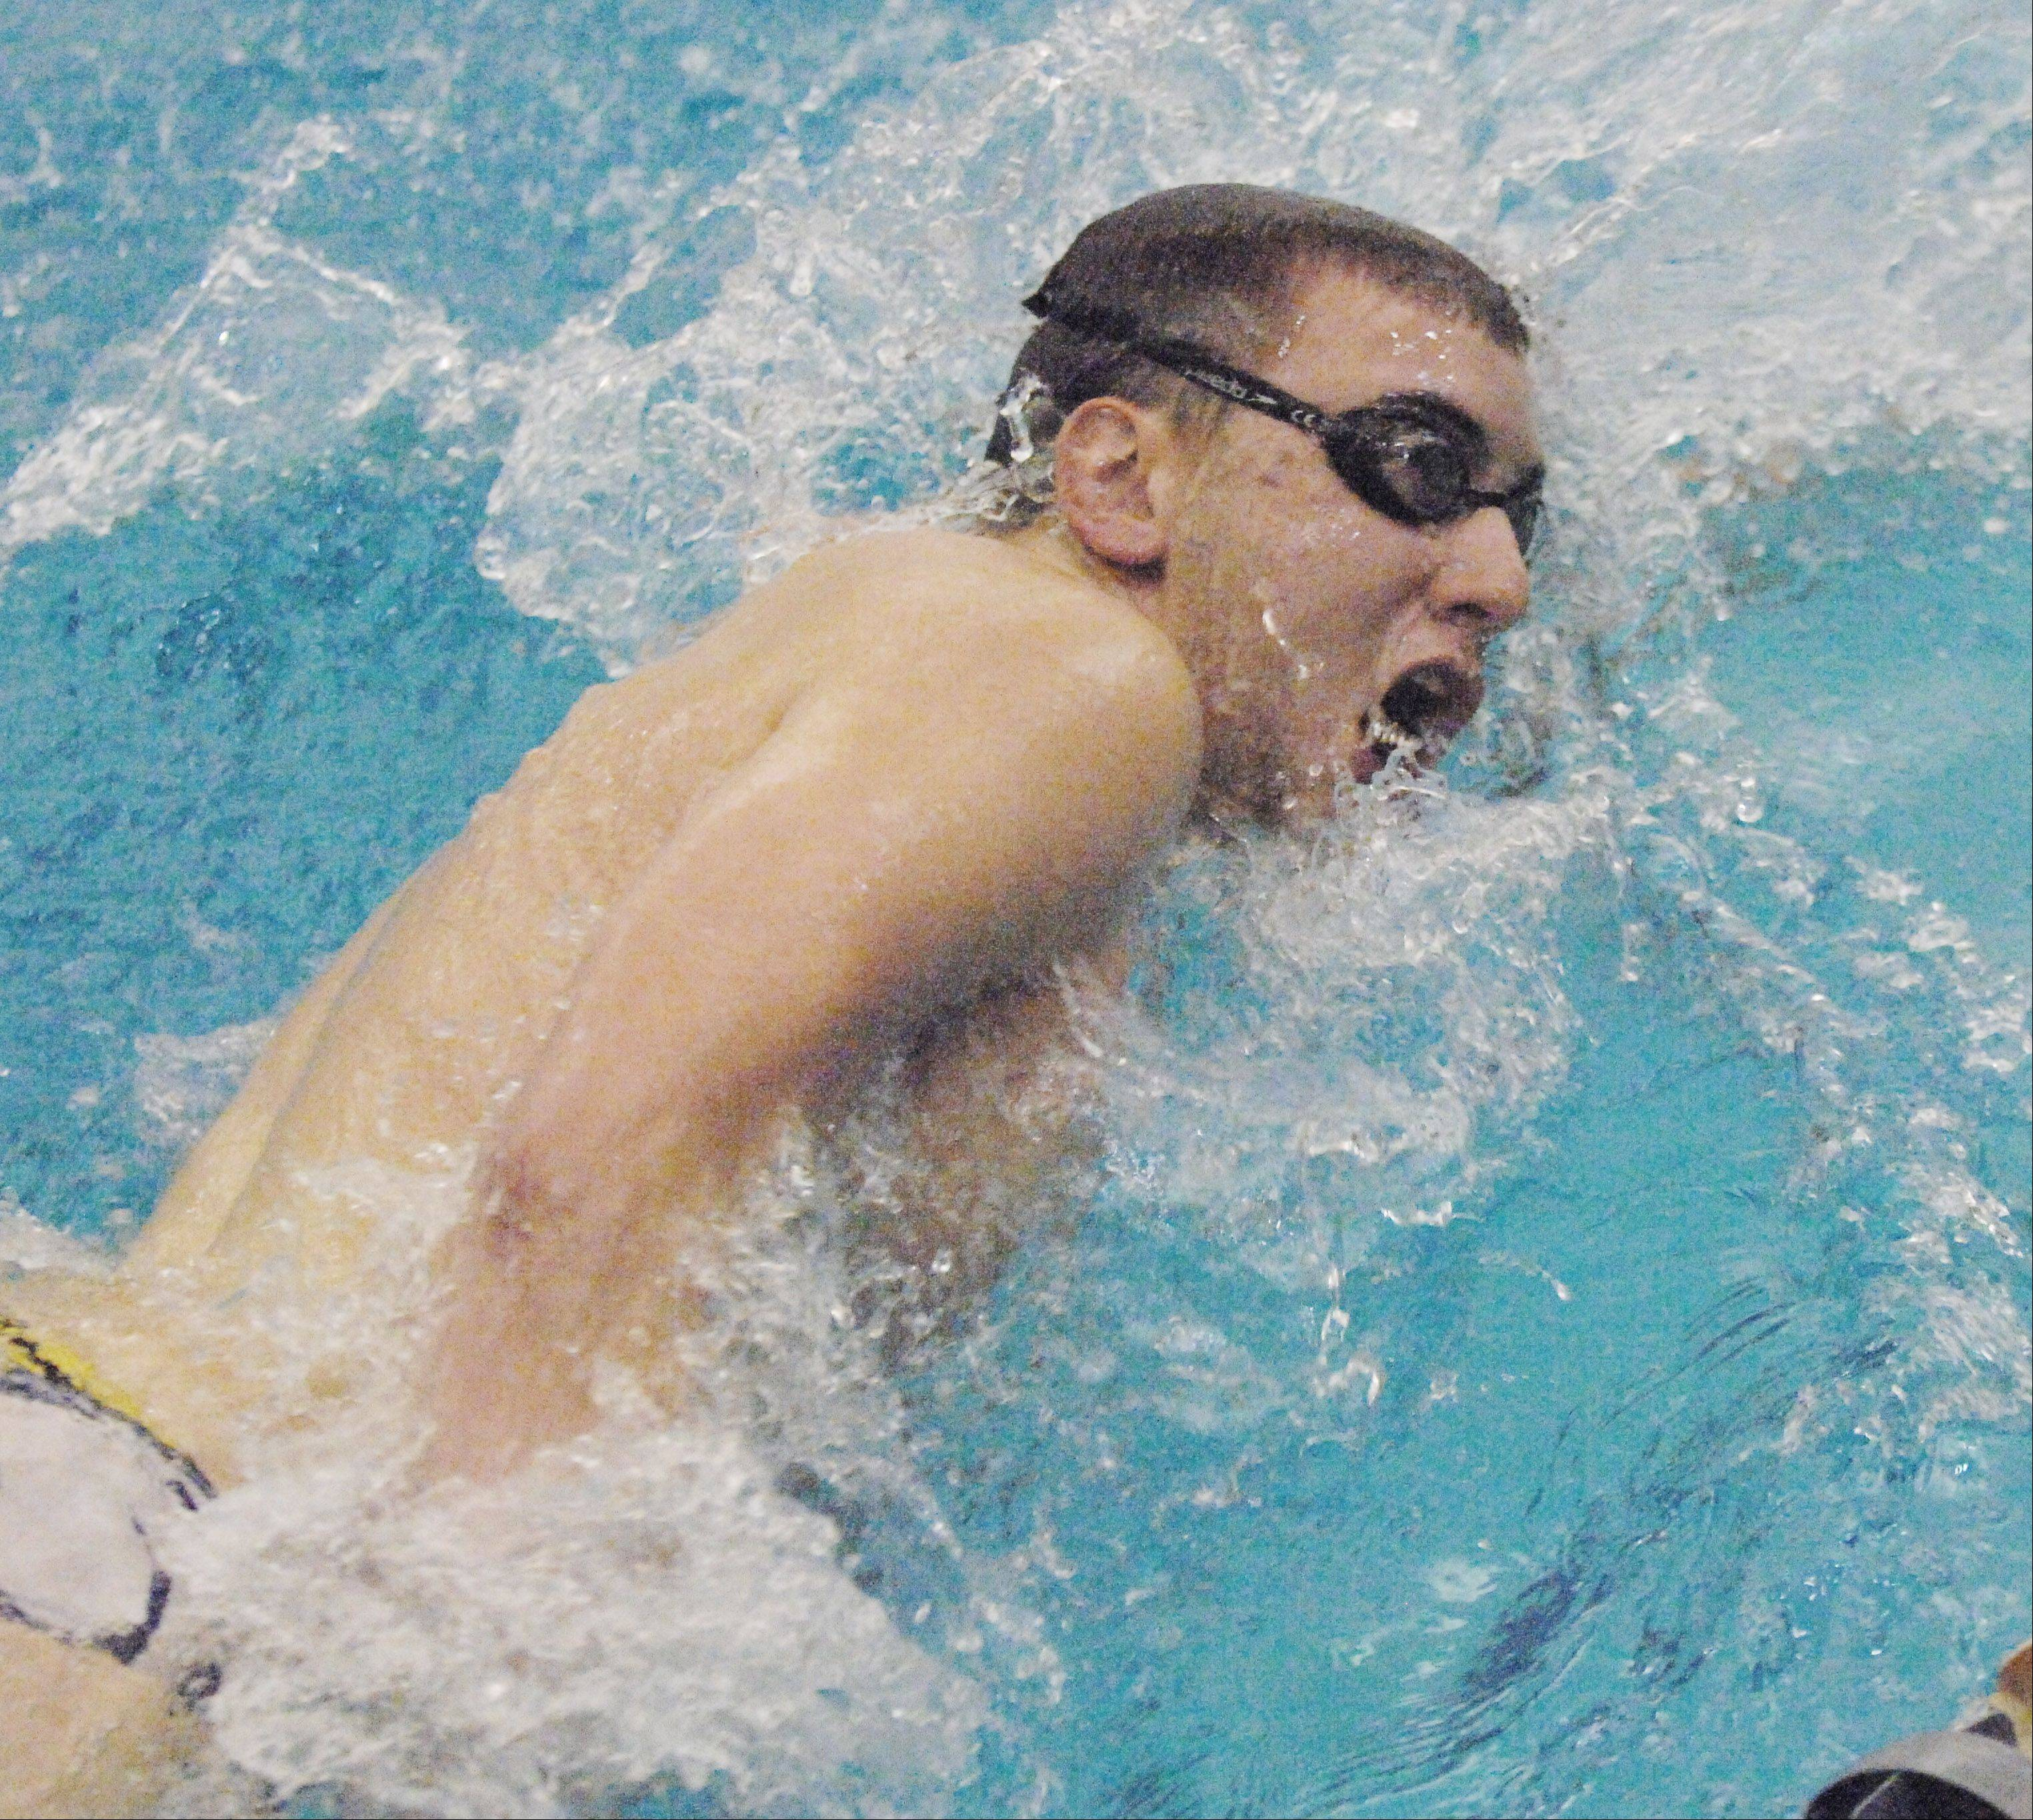 Brian DePuy of Neuqua Valley swims the 200 free during the Neuqua Valley boys swimming invitational Saturday.